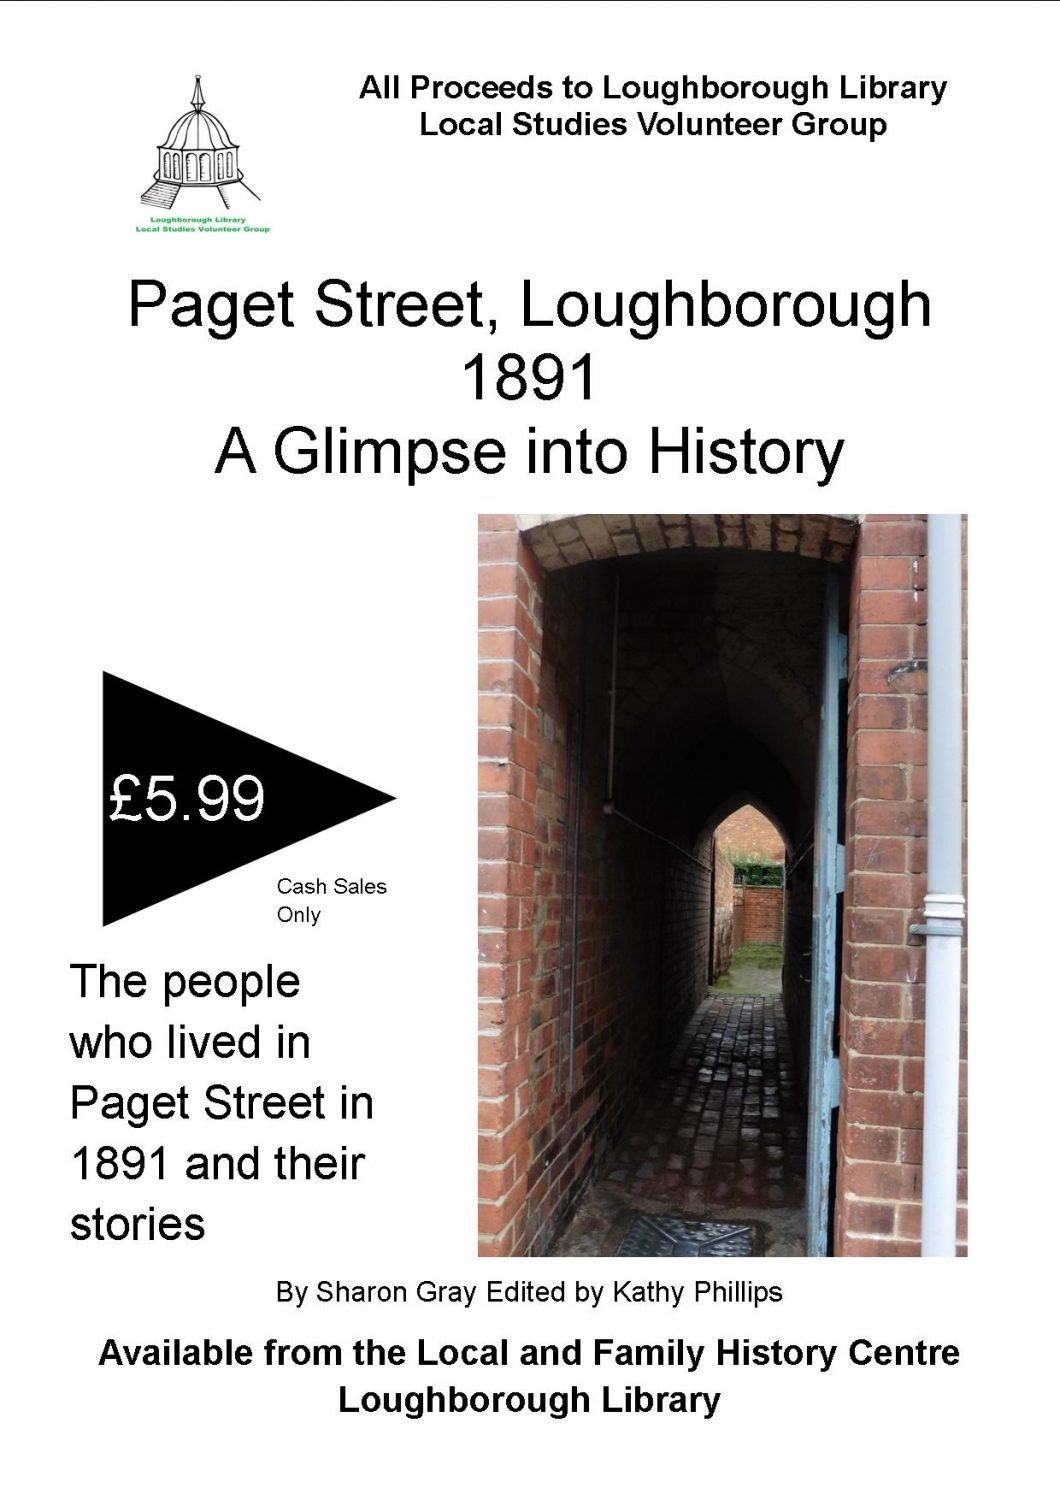 Paget Street, A Glimpse into History